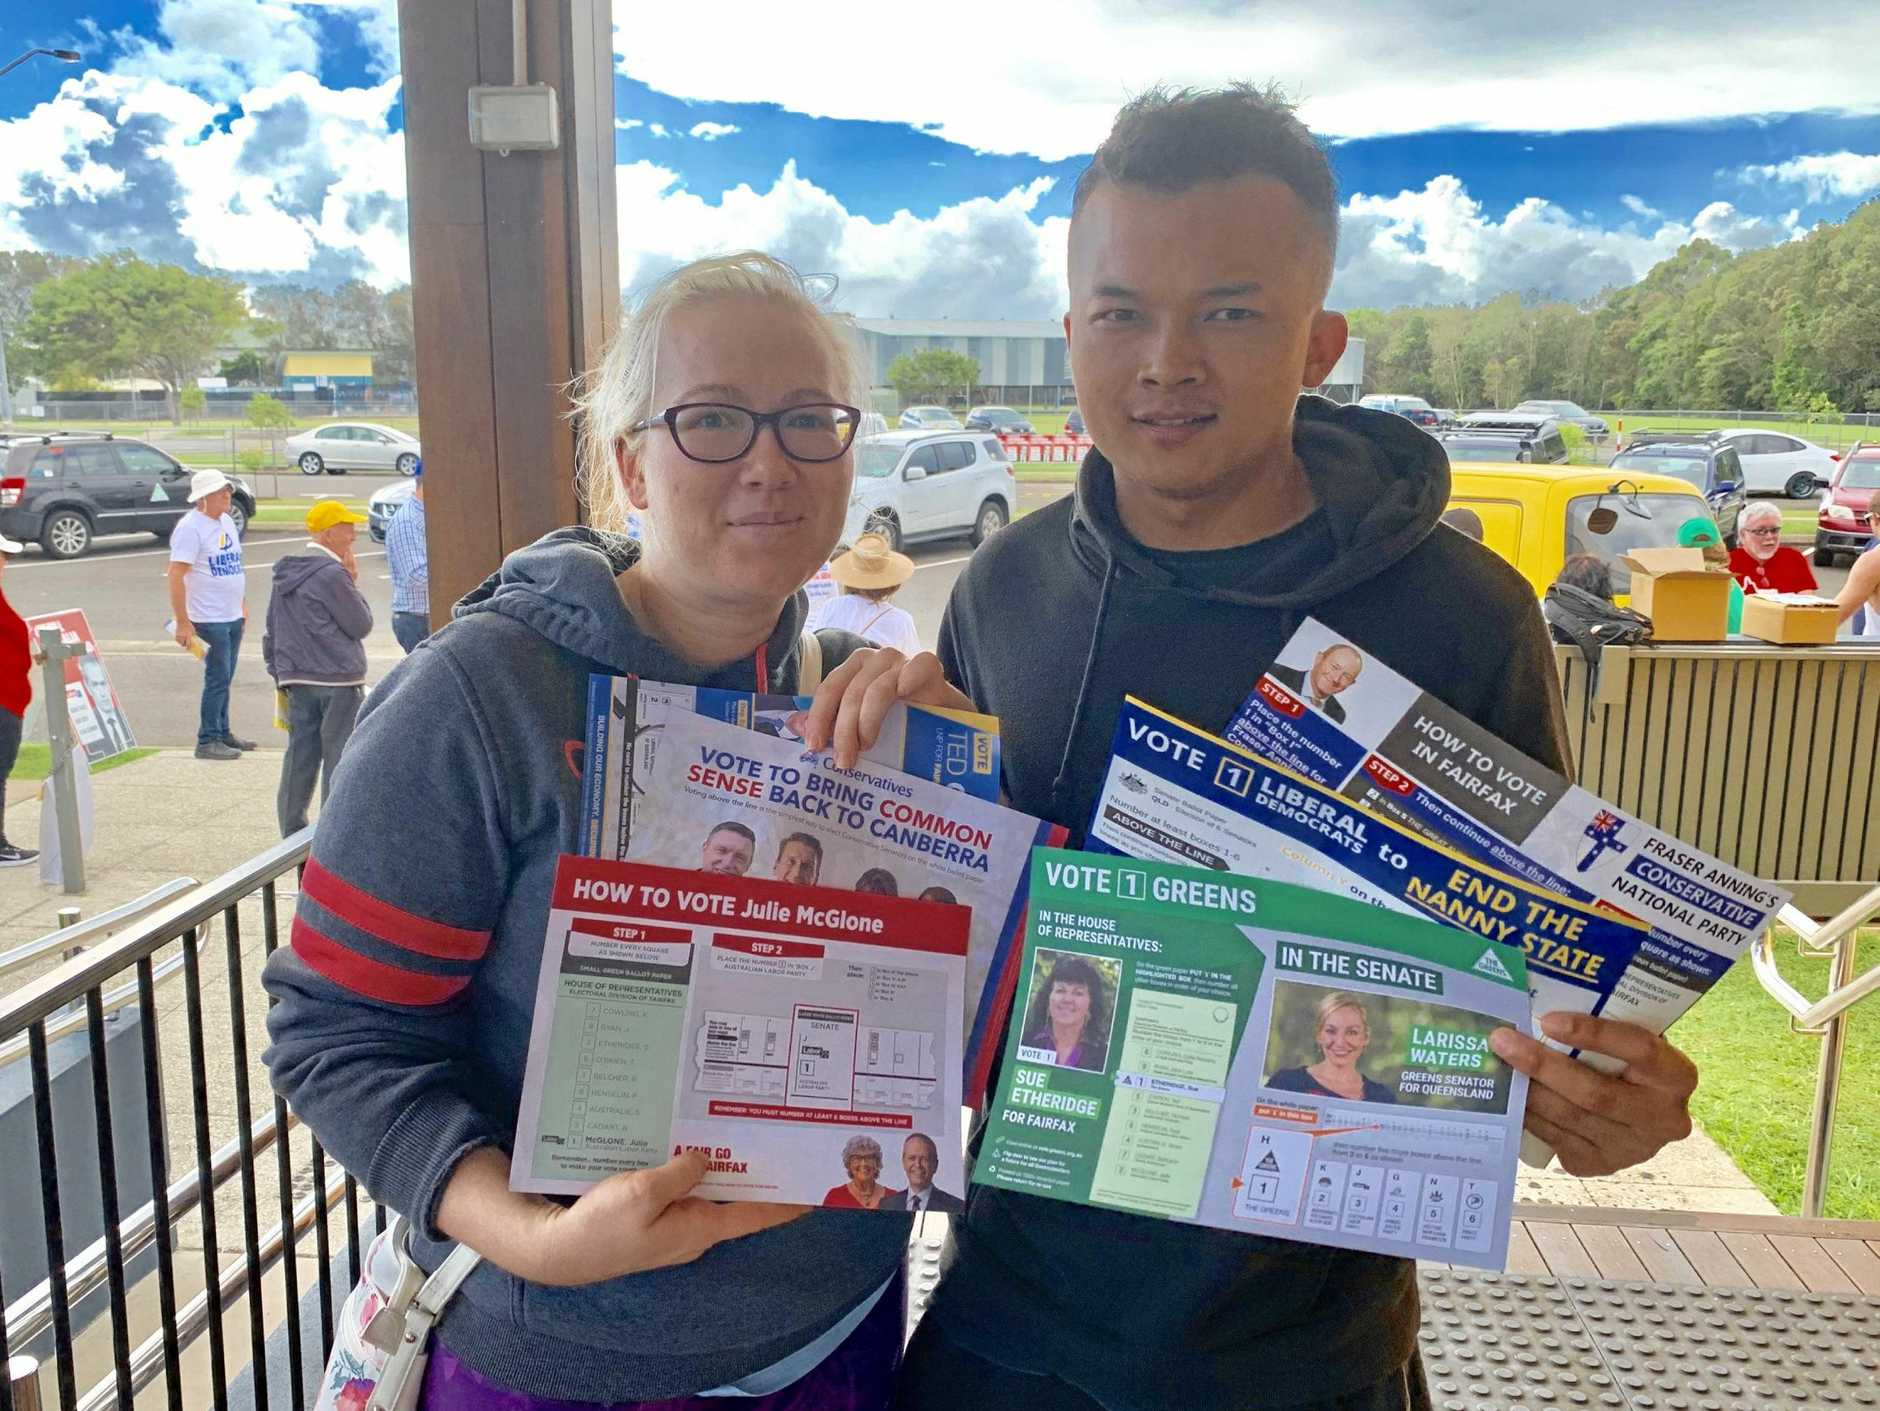 VOTING: Theresa Miller and Sirichai Noithanom thought the number of handouts were unnecessary as they prepared to vote at Mountain Creek State School.